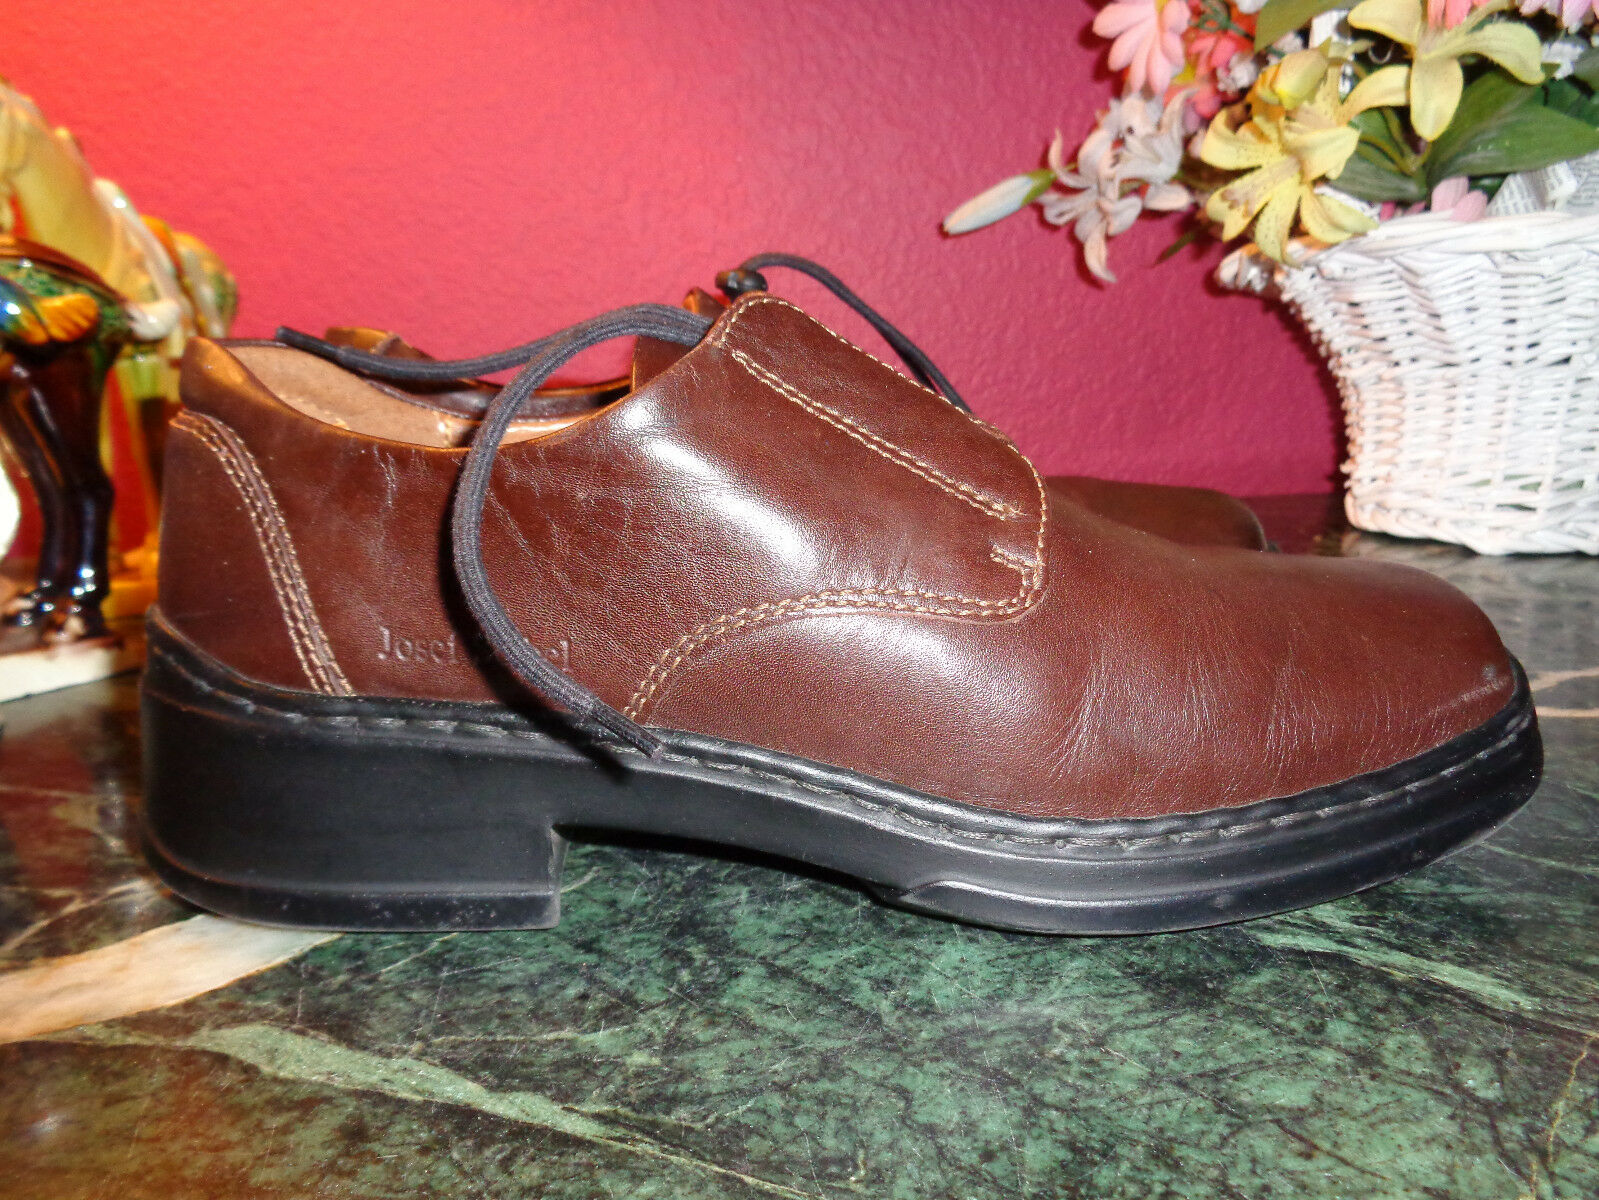 JOSEF SEIBEL brown leather oxford slip ons size 39 European comfort shoe xlnt